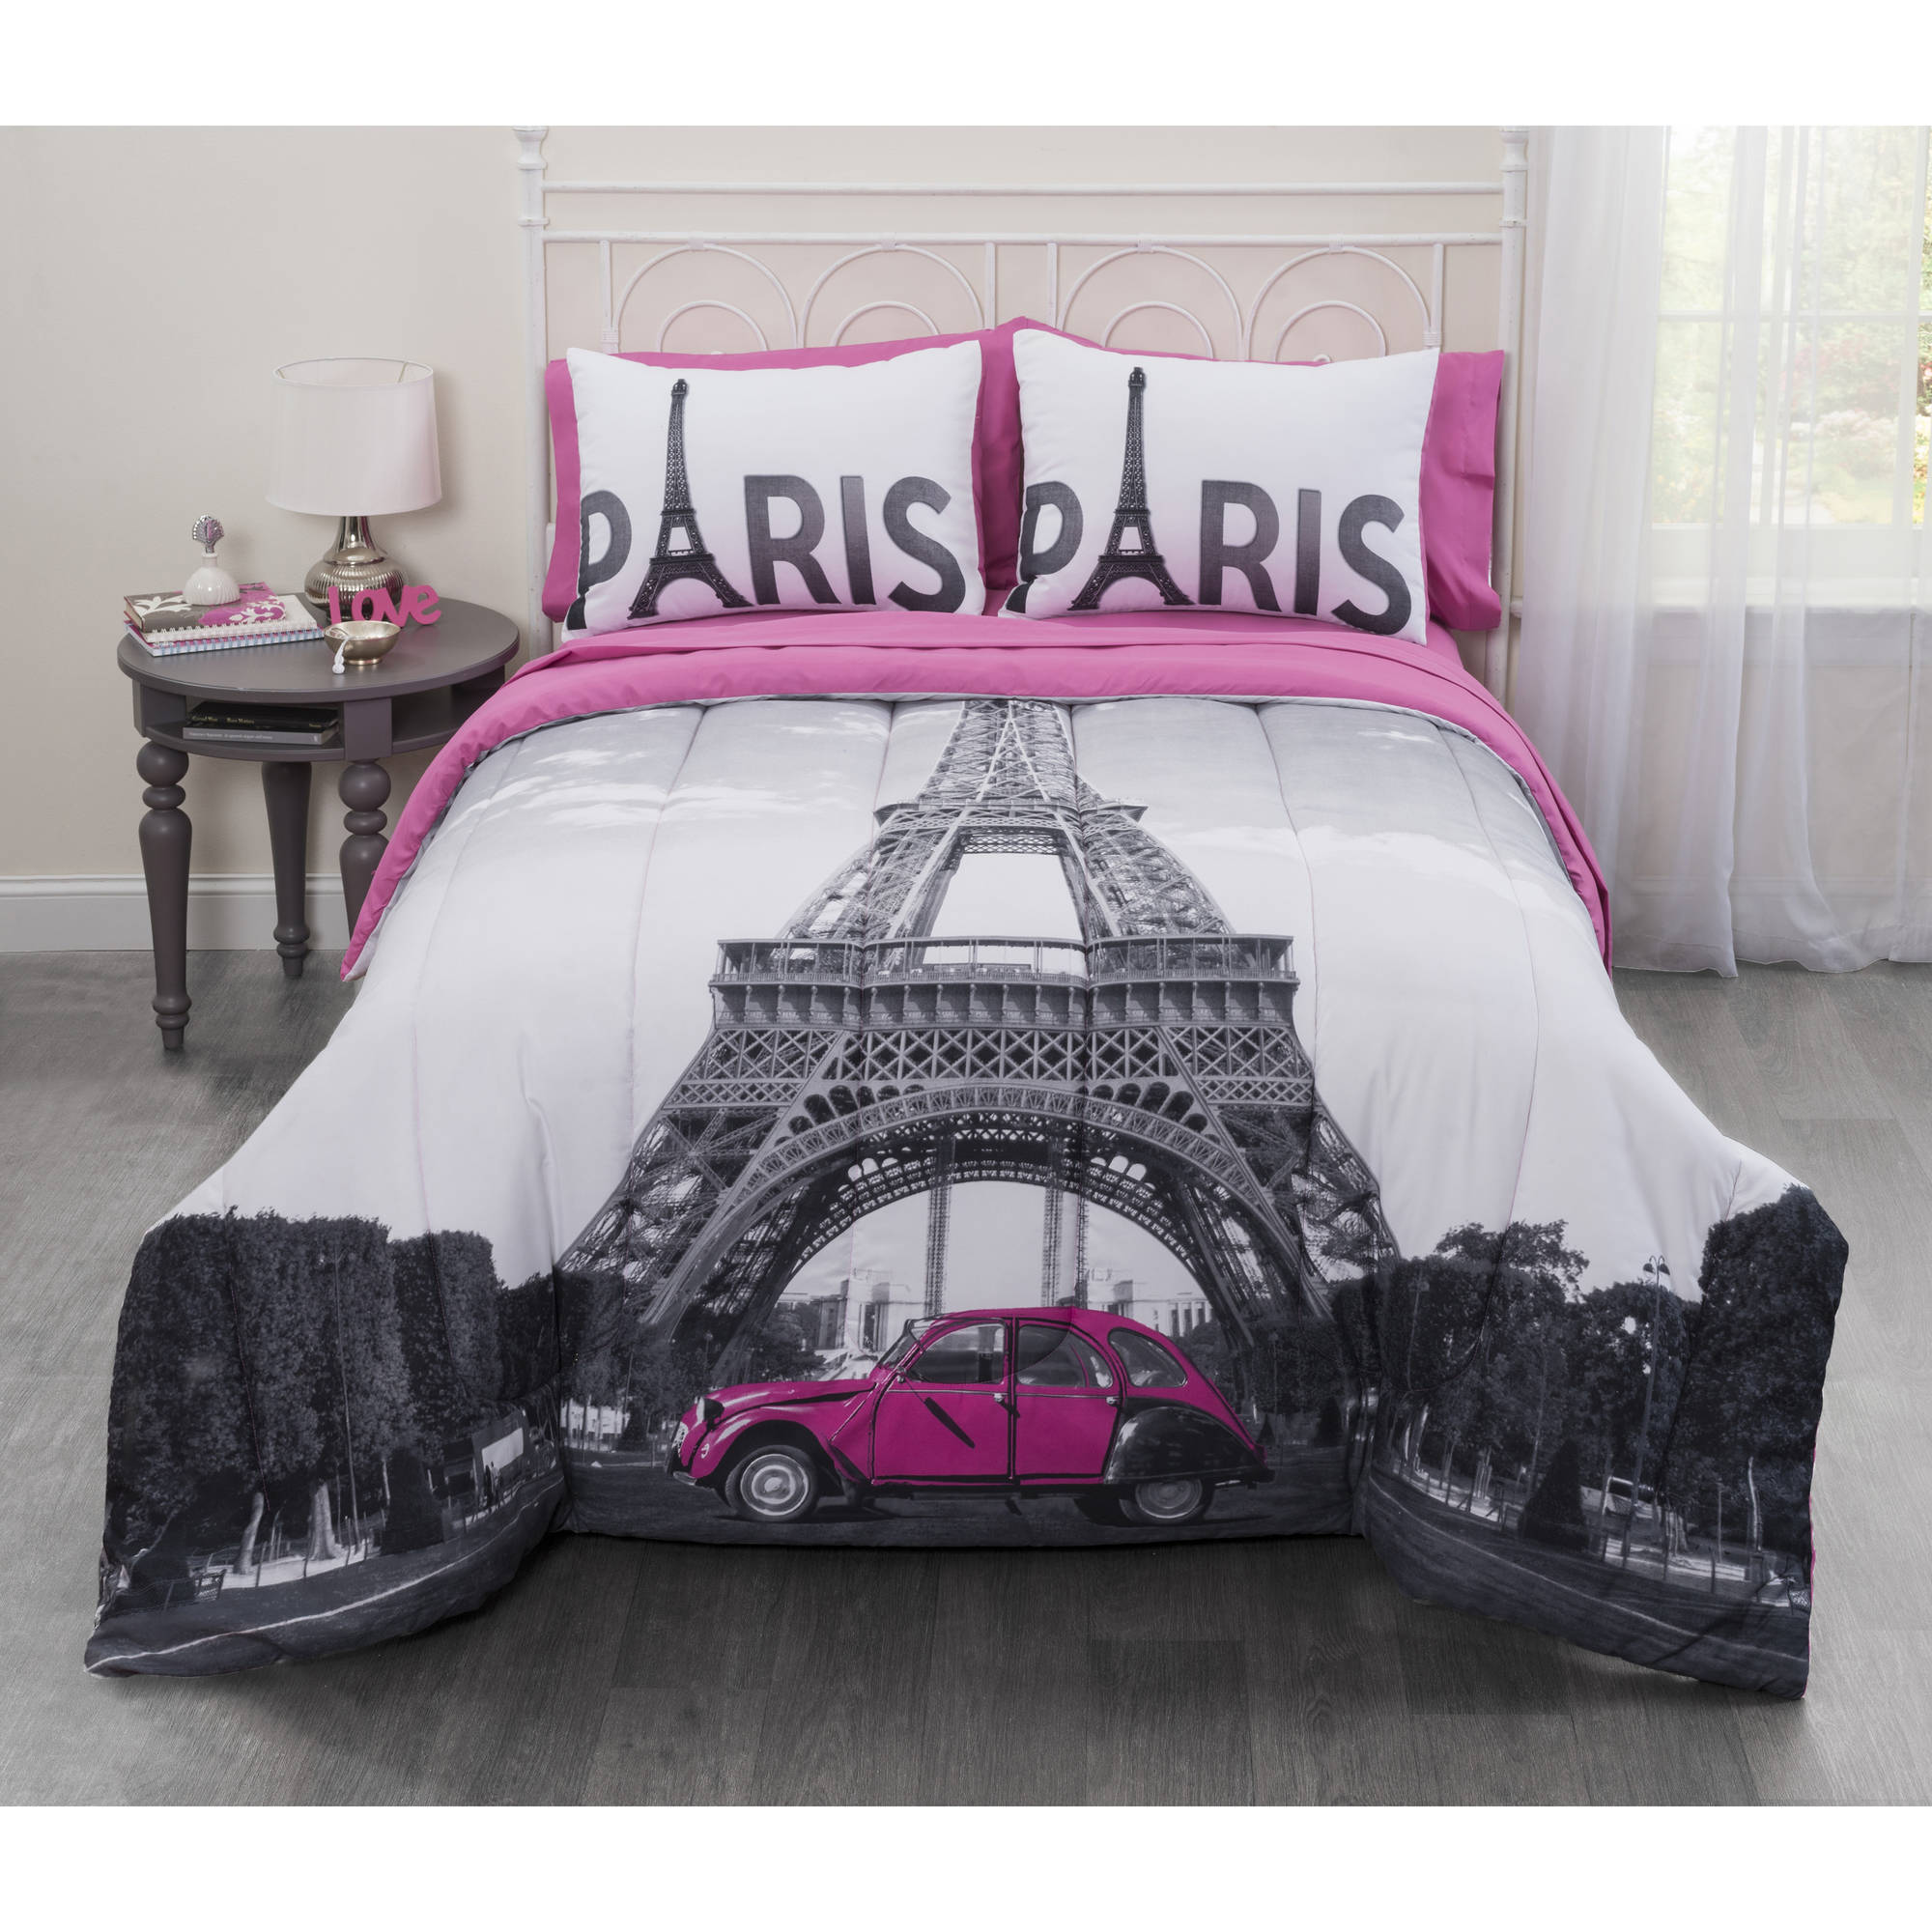 Casa Photo Real Paris Eiffel Tower Bed in a Bag Bedding Set